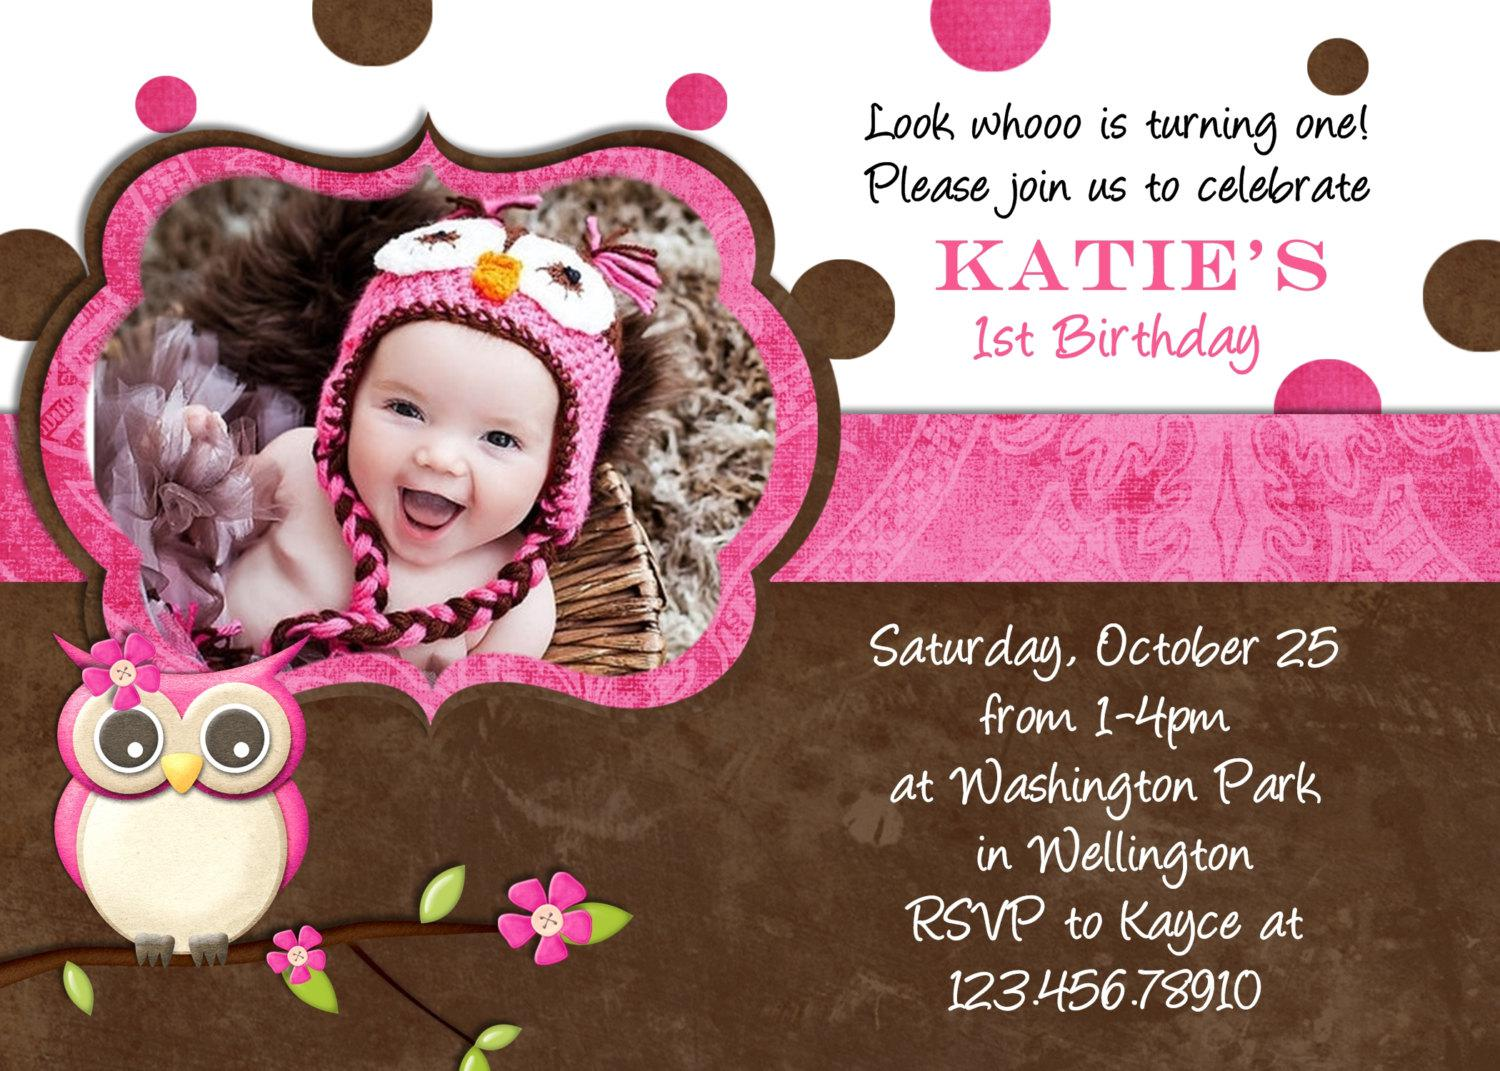 20 birthday invitations cards sample wording printable birthday invitation cards filmwisefo Gallery